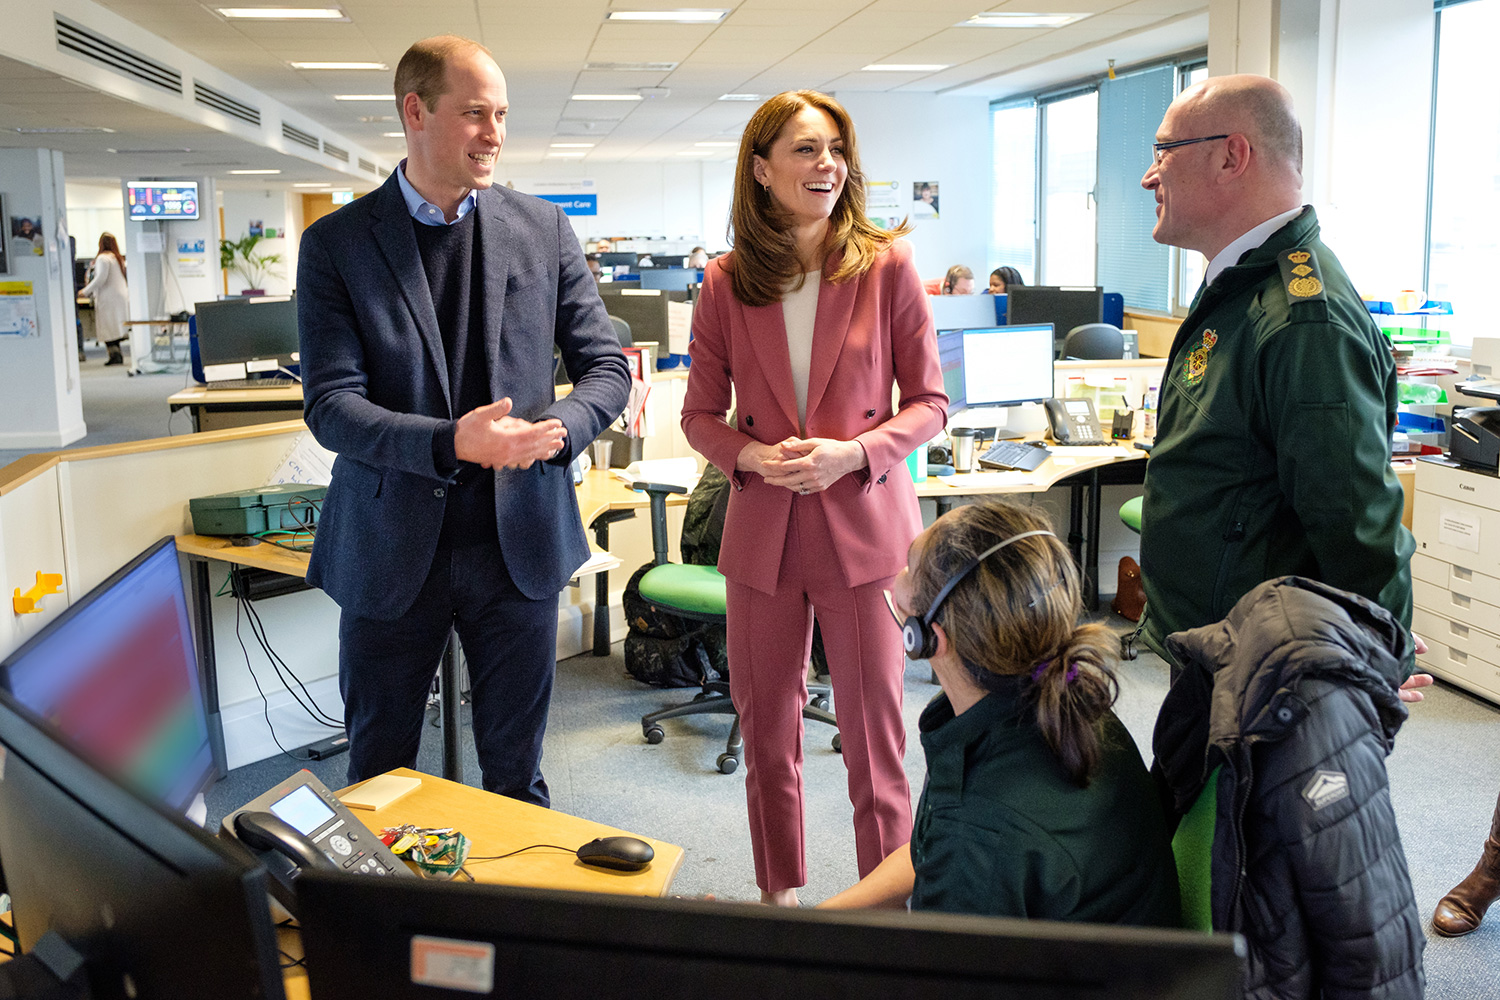 Palace of the Duke and Duchess of Cambridge talking with Chief Executive of the London Ambulance Service, Garrett Emmerson, and an unidentified staff member (left) during a visit to the London Ambulance Service 111 control room in Croydon on Thursday to meet ambulance staff and 111 call handlers who have been taking NHS 111 calls from the public, and thank them for the vital work they are doing.